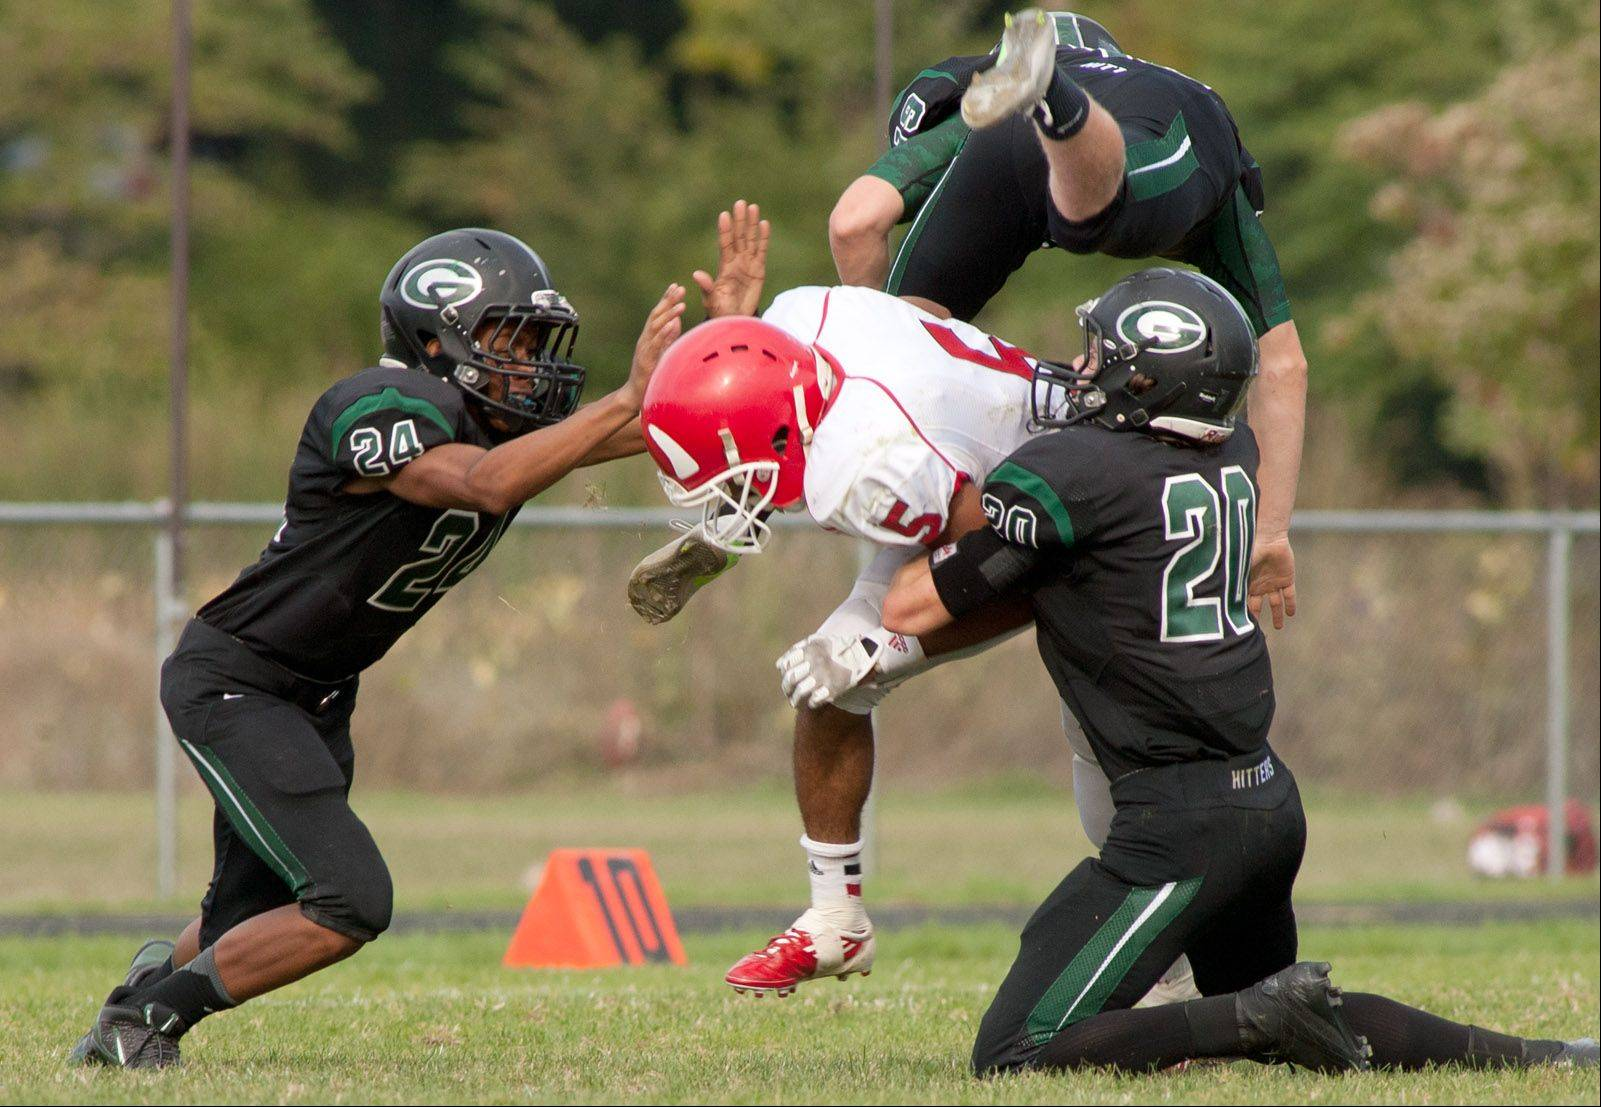 Hinsdale Central's Juwan Edmund, center, is tackled by Glenbard West's Ryan Thomas, left, and Jason Balogh, right,